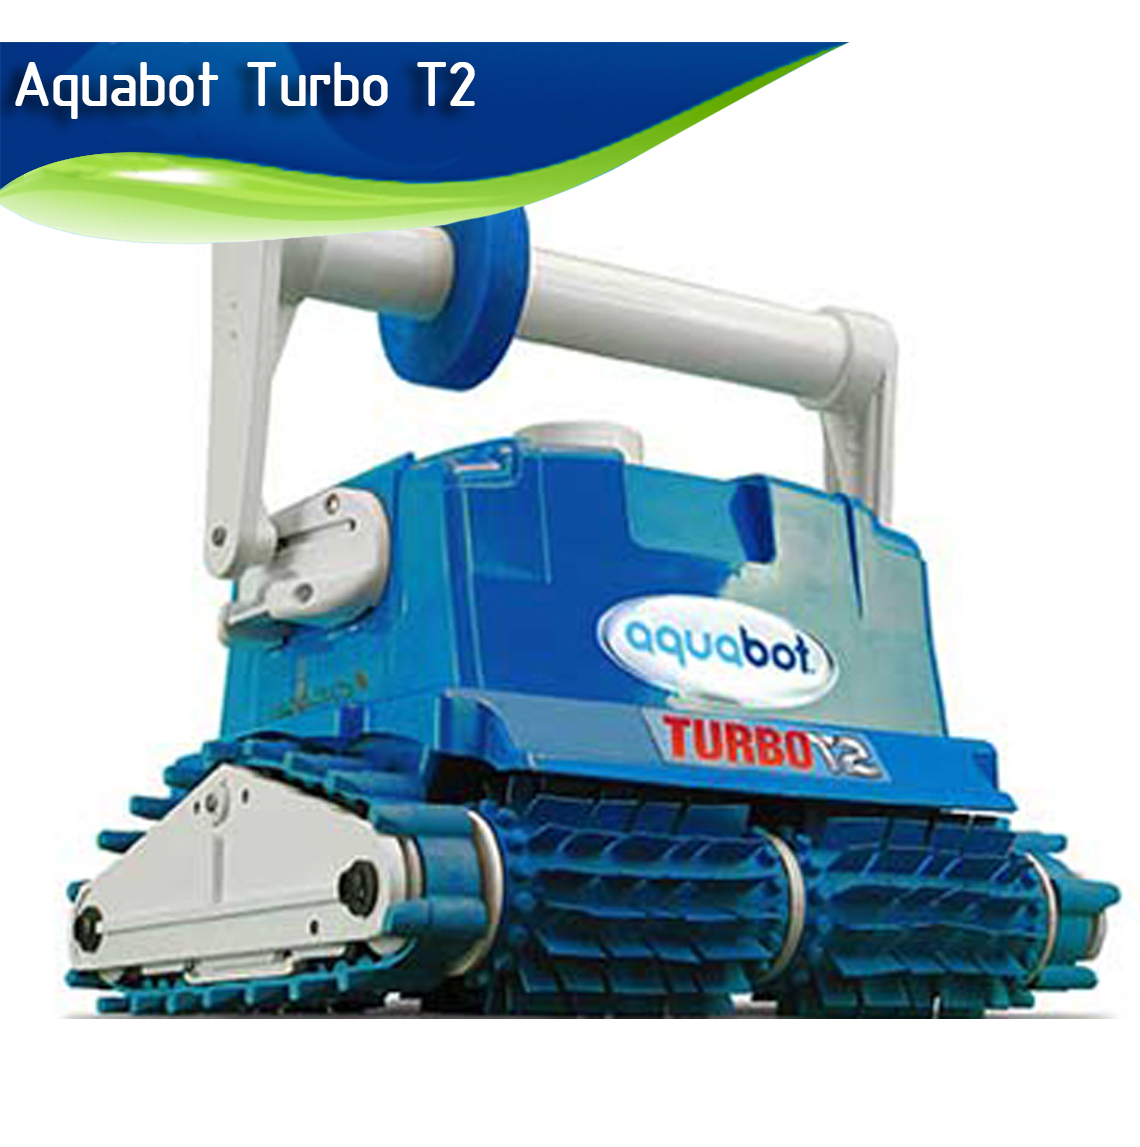 Aquabot Turbo T2 Review Best Robotic Pool Cleaners